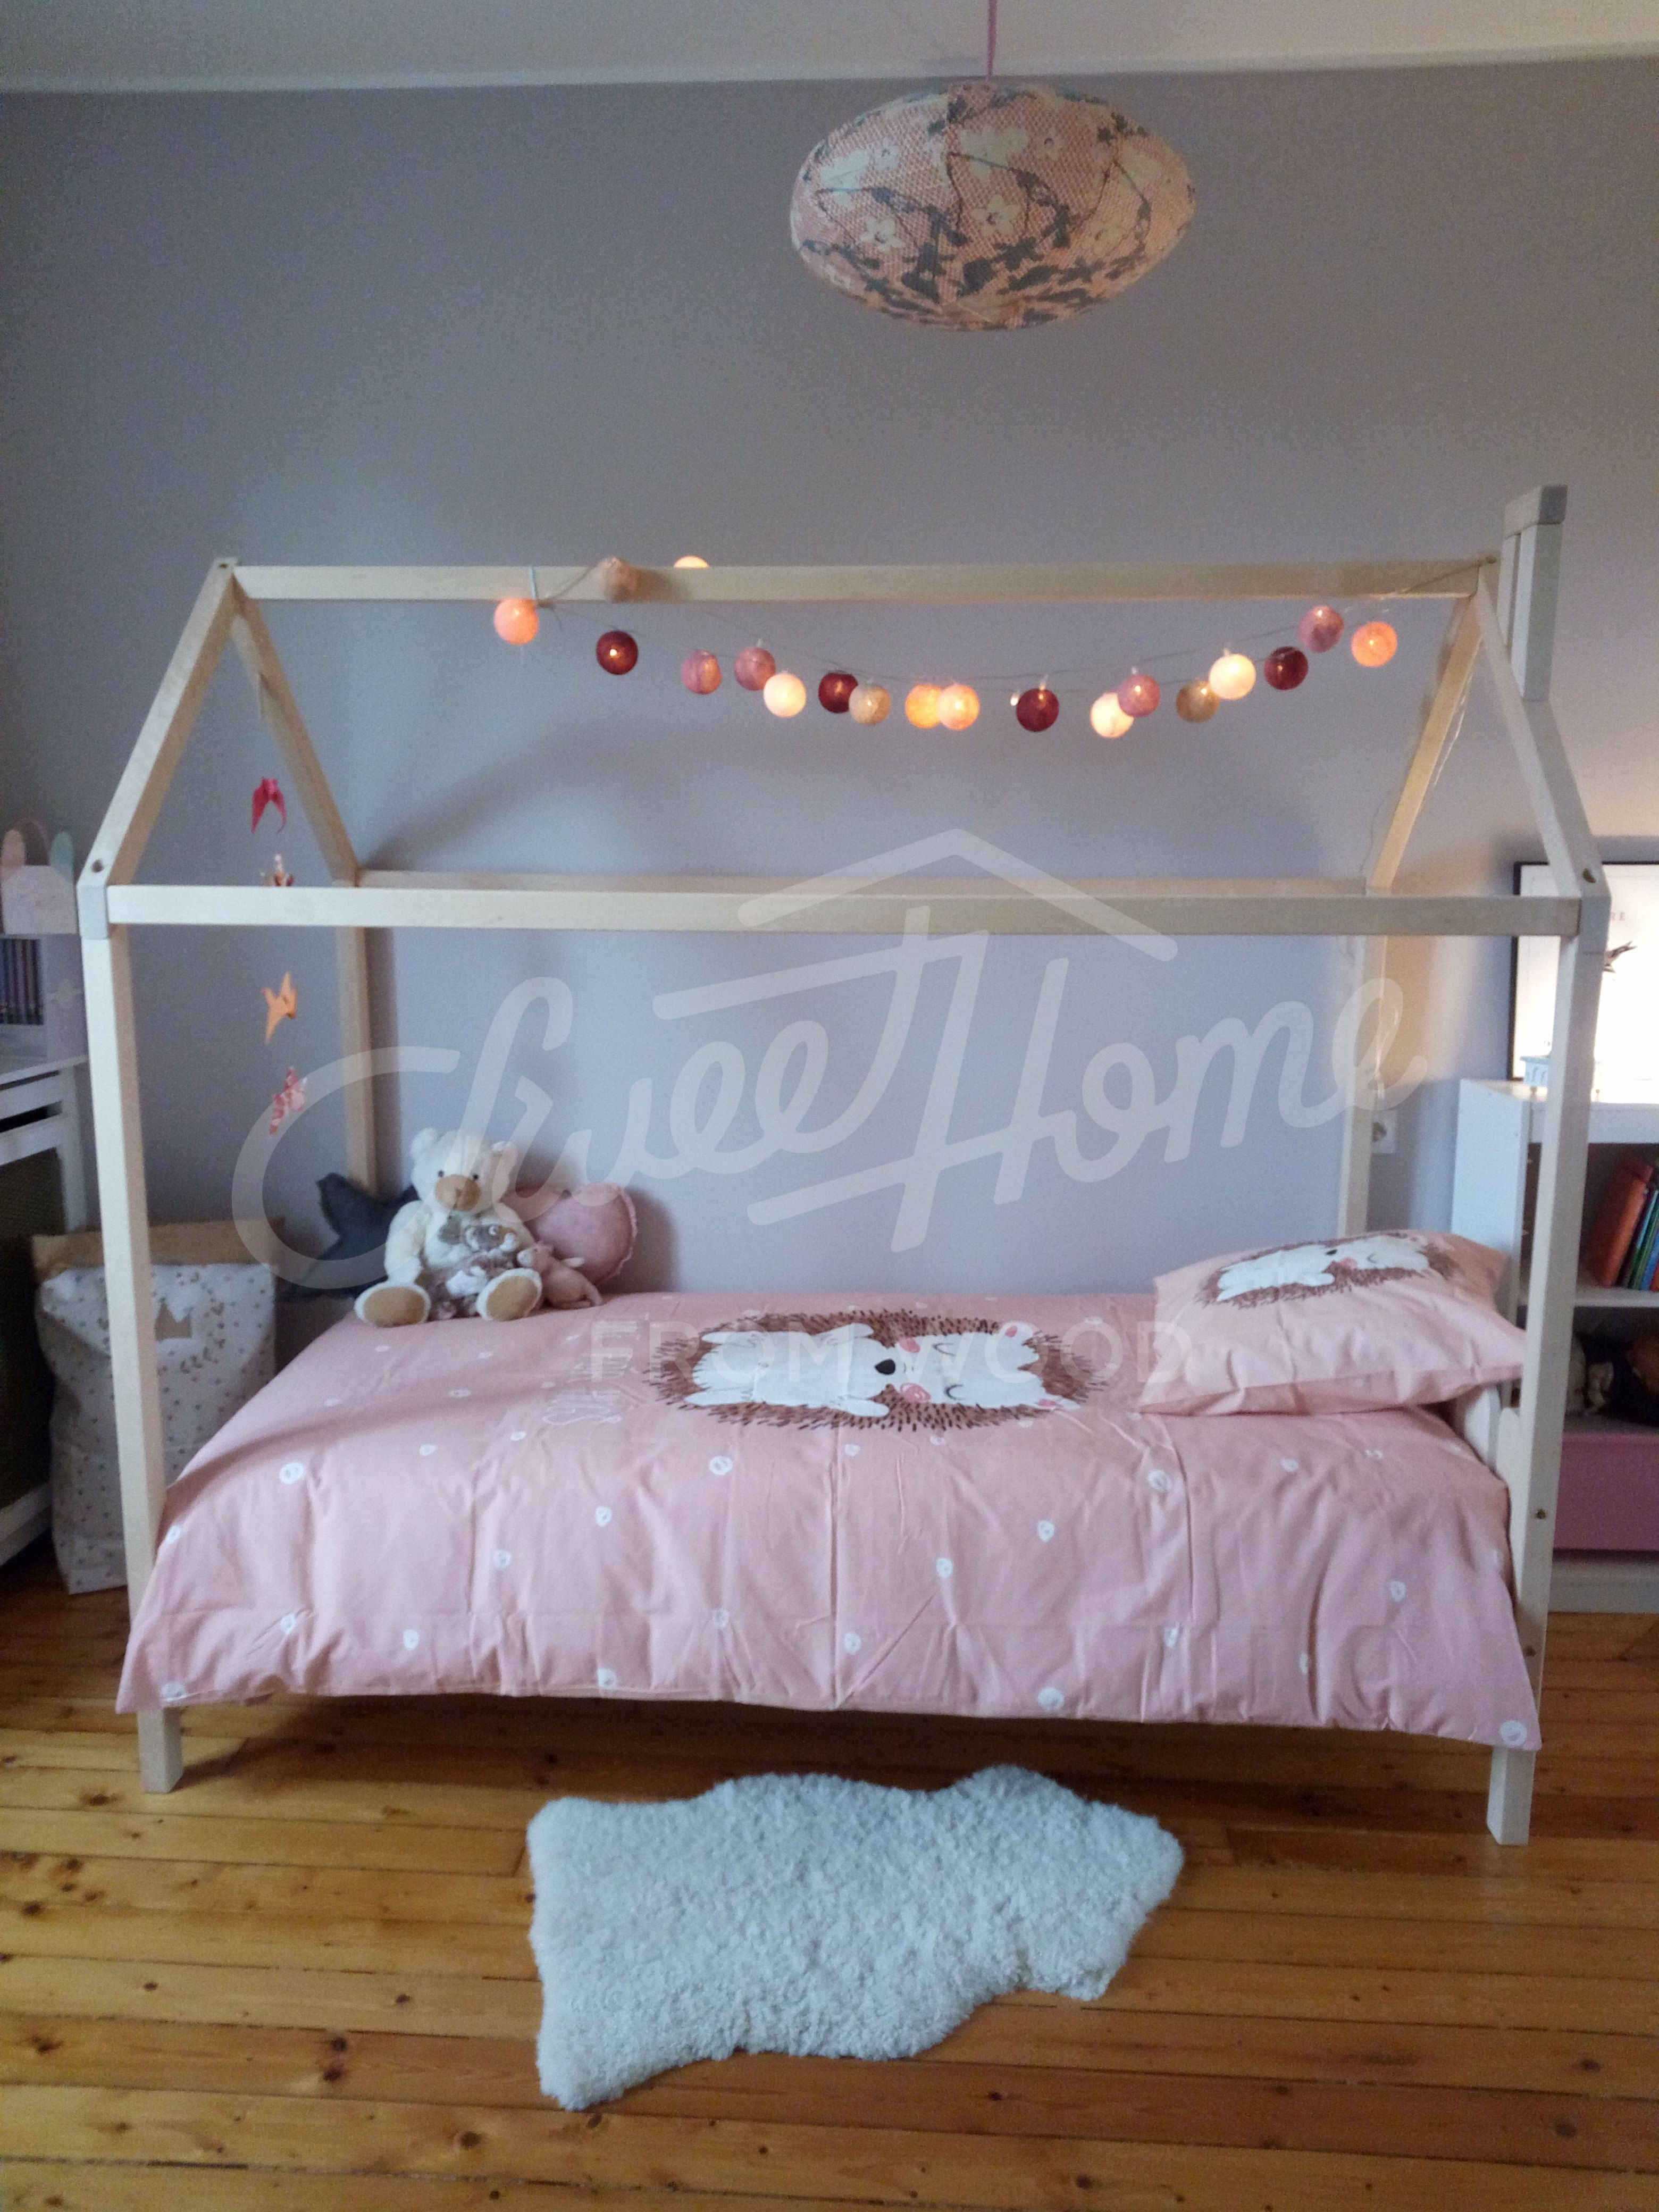 Scandi Style Bedding Baby Bed Tent Wood Bed Or Toddler Bed House Baby